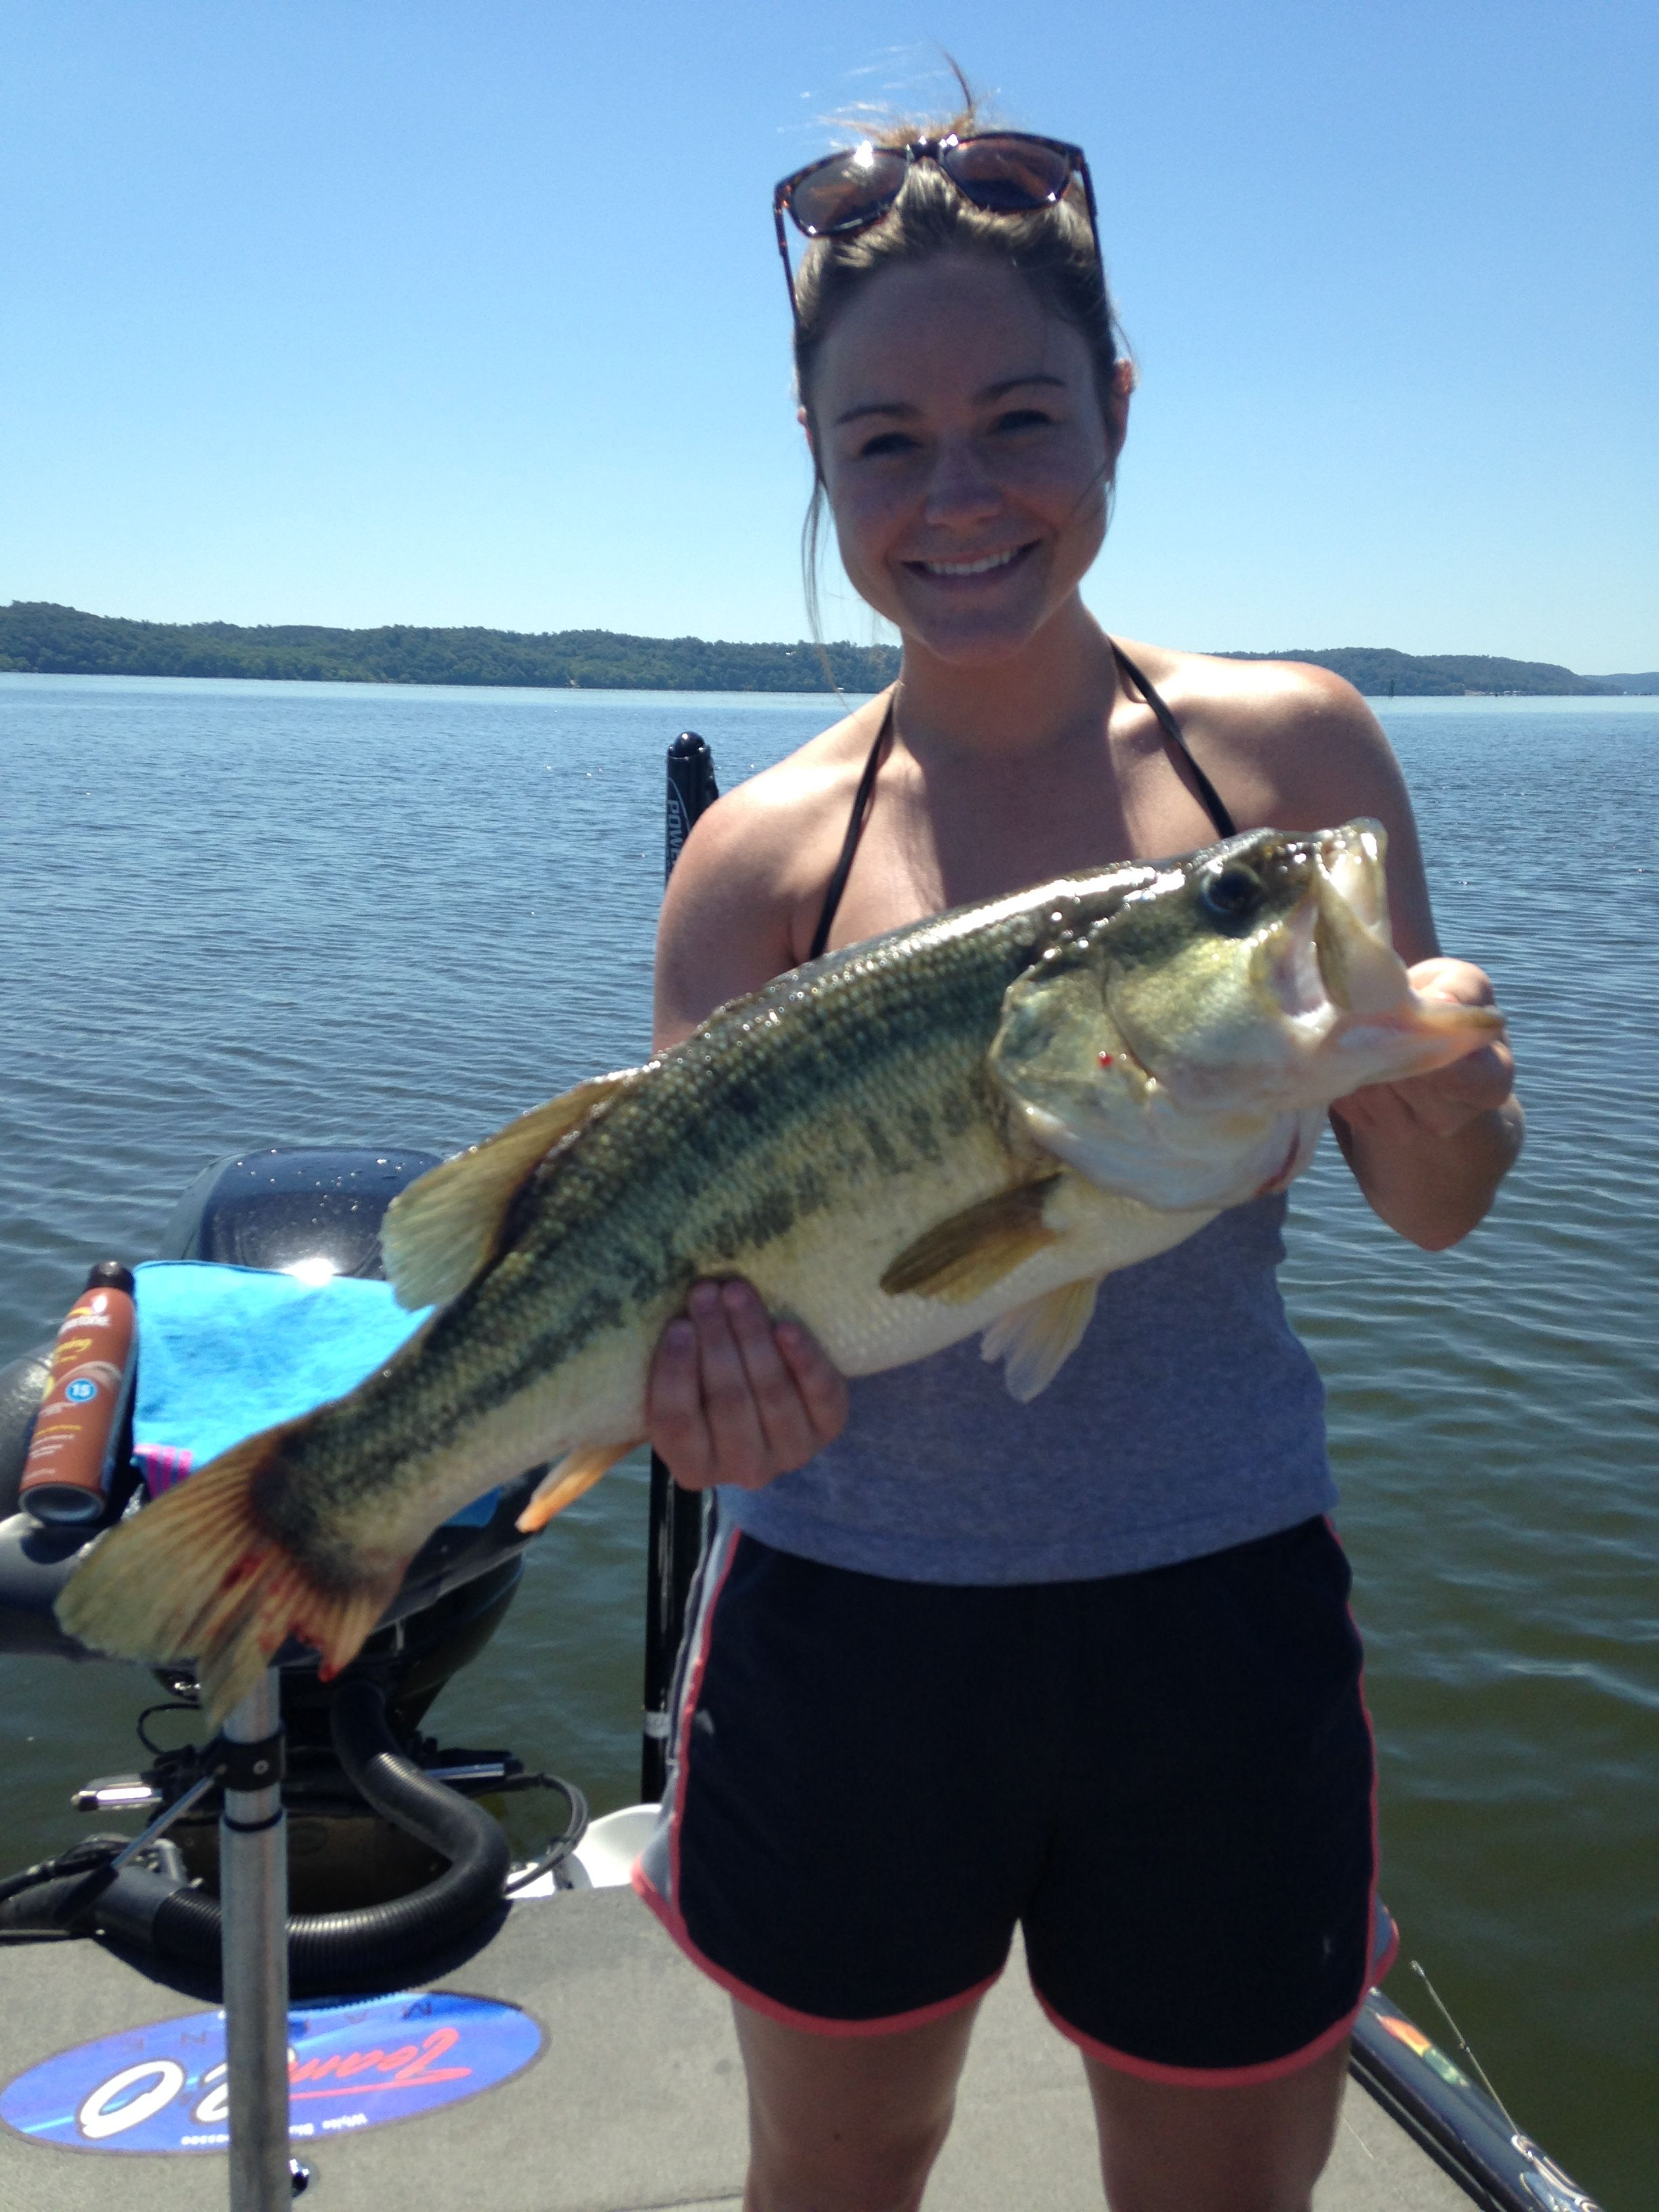 Kentucky lake guide 7 8 16 1 for Kentucky fishing report